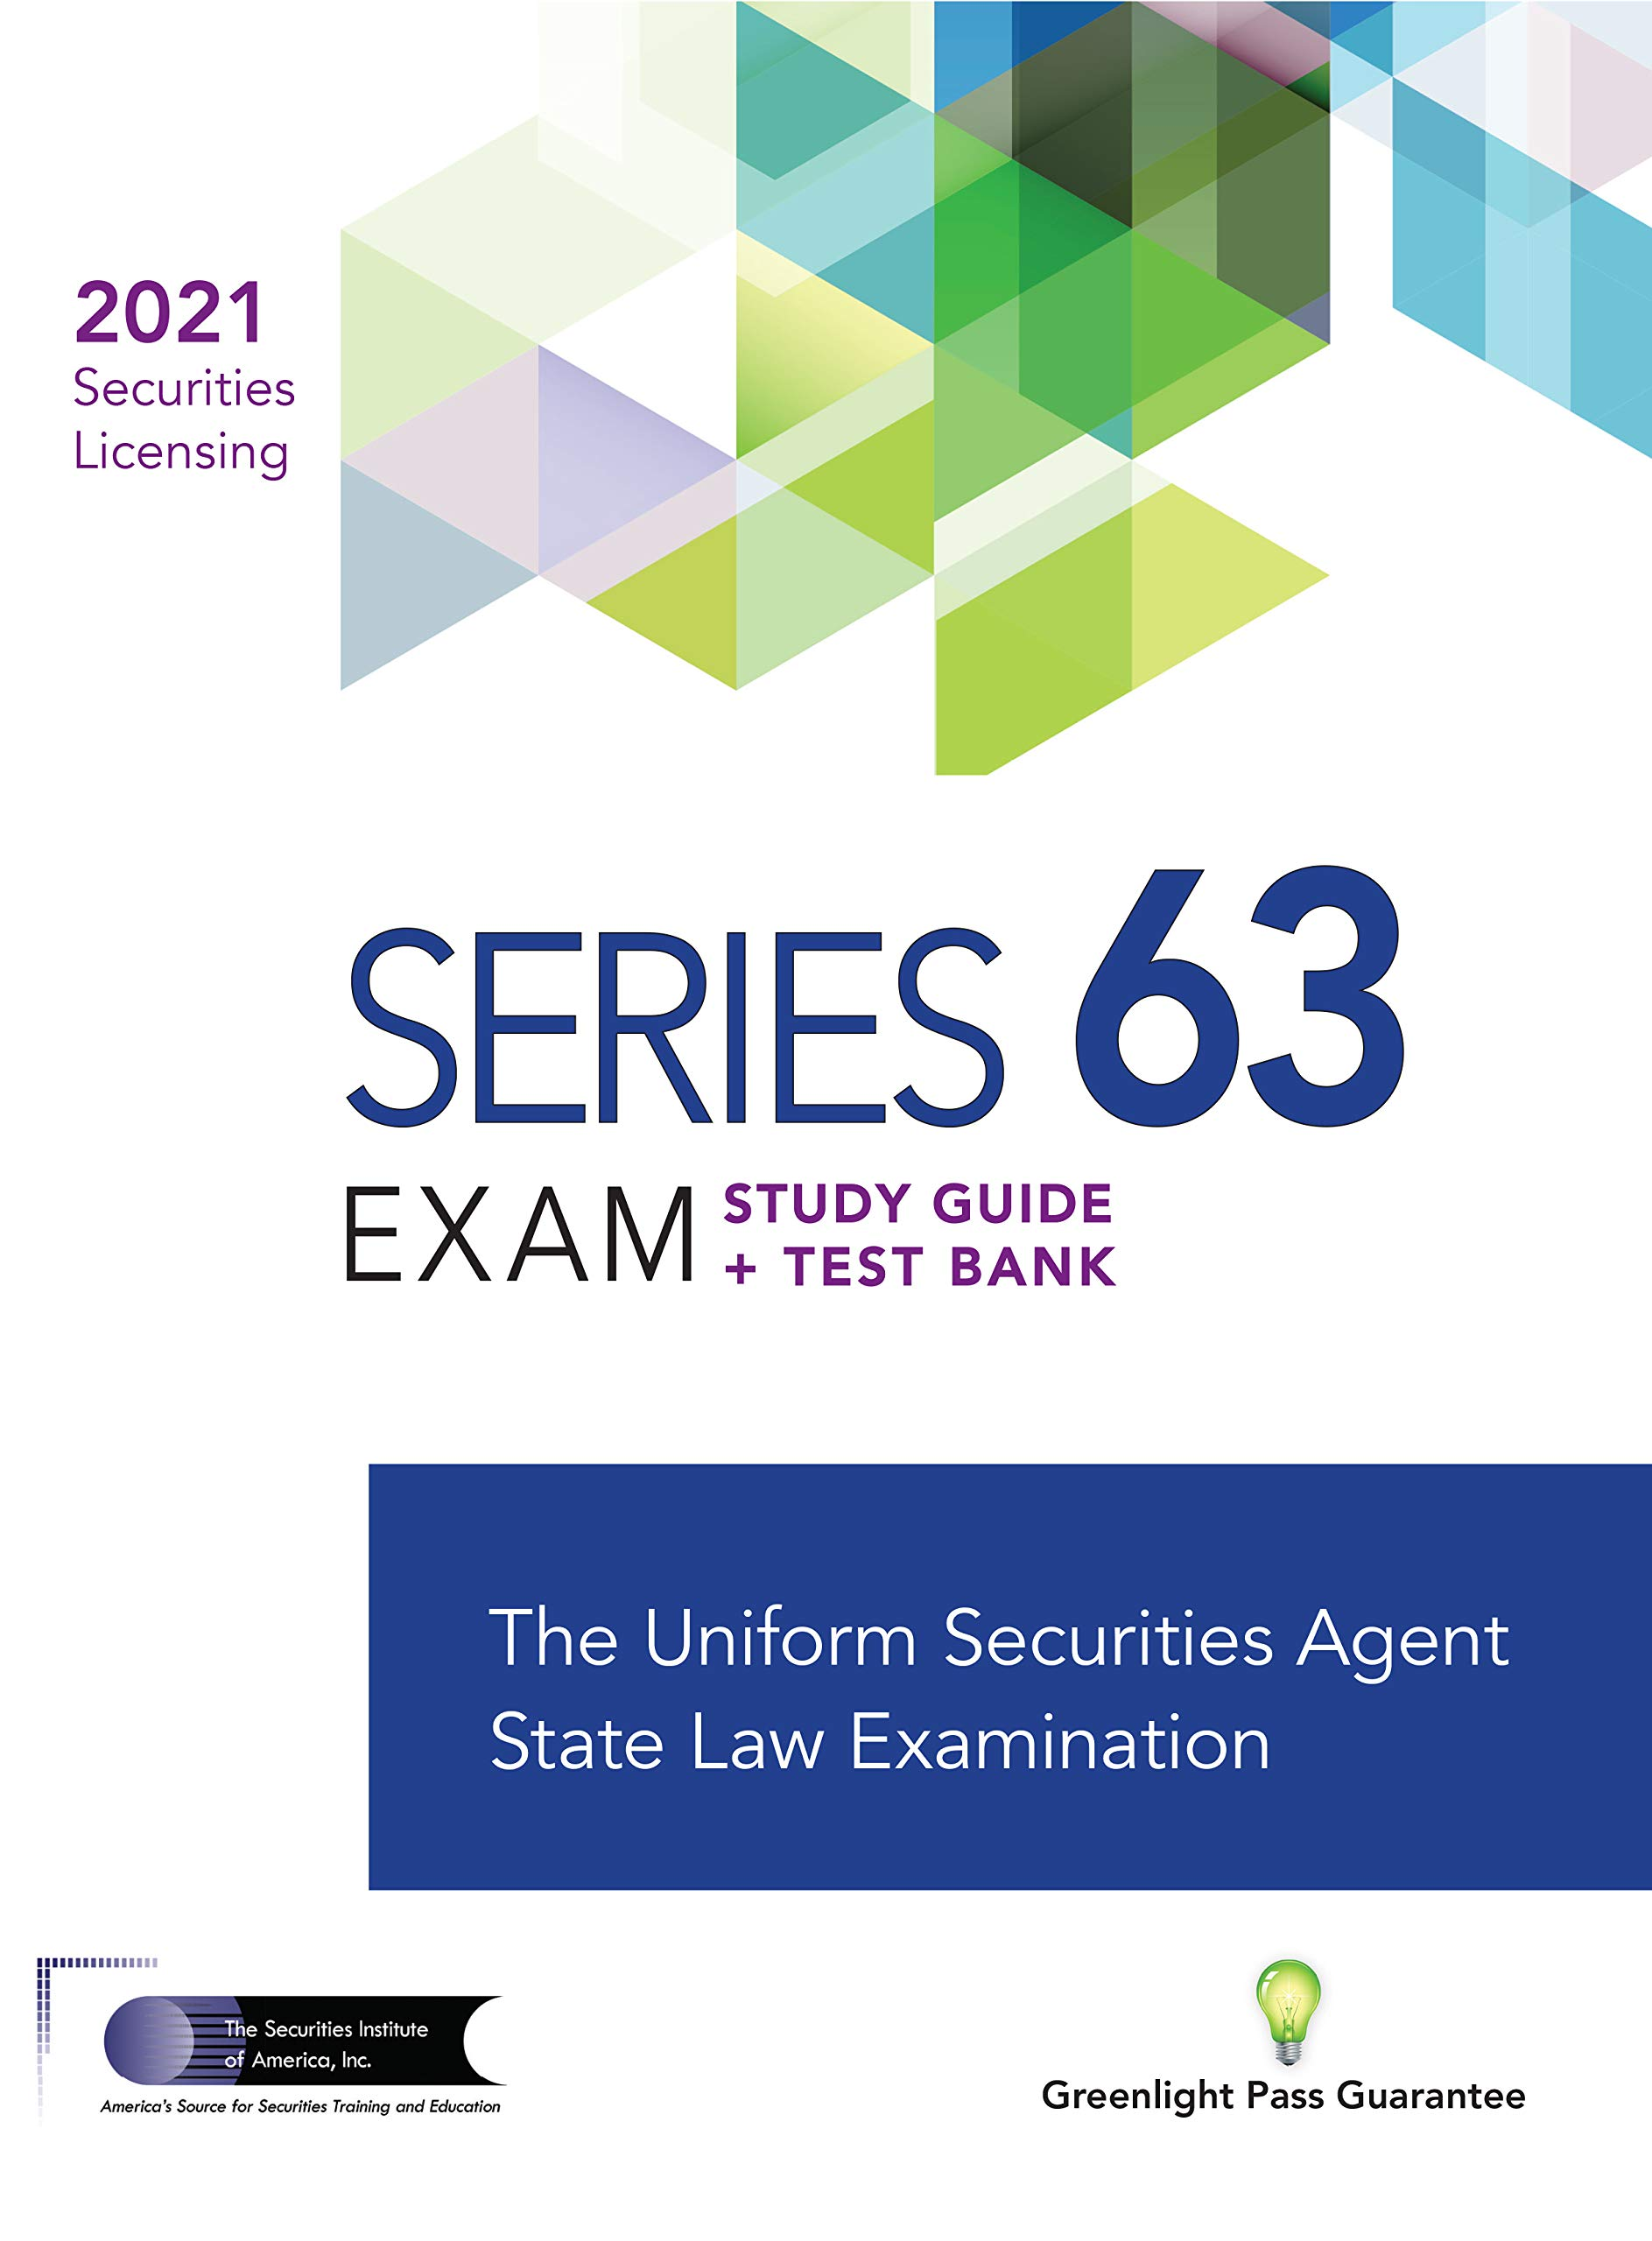 SERIES 63 EXAM STUDY GUIDE 2021 + TEST BANK